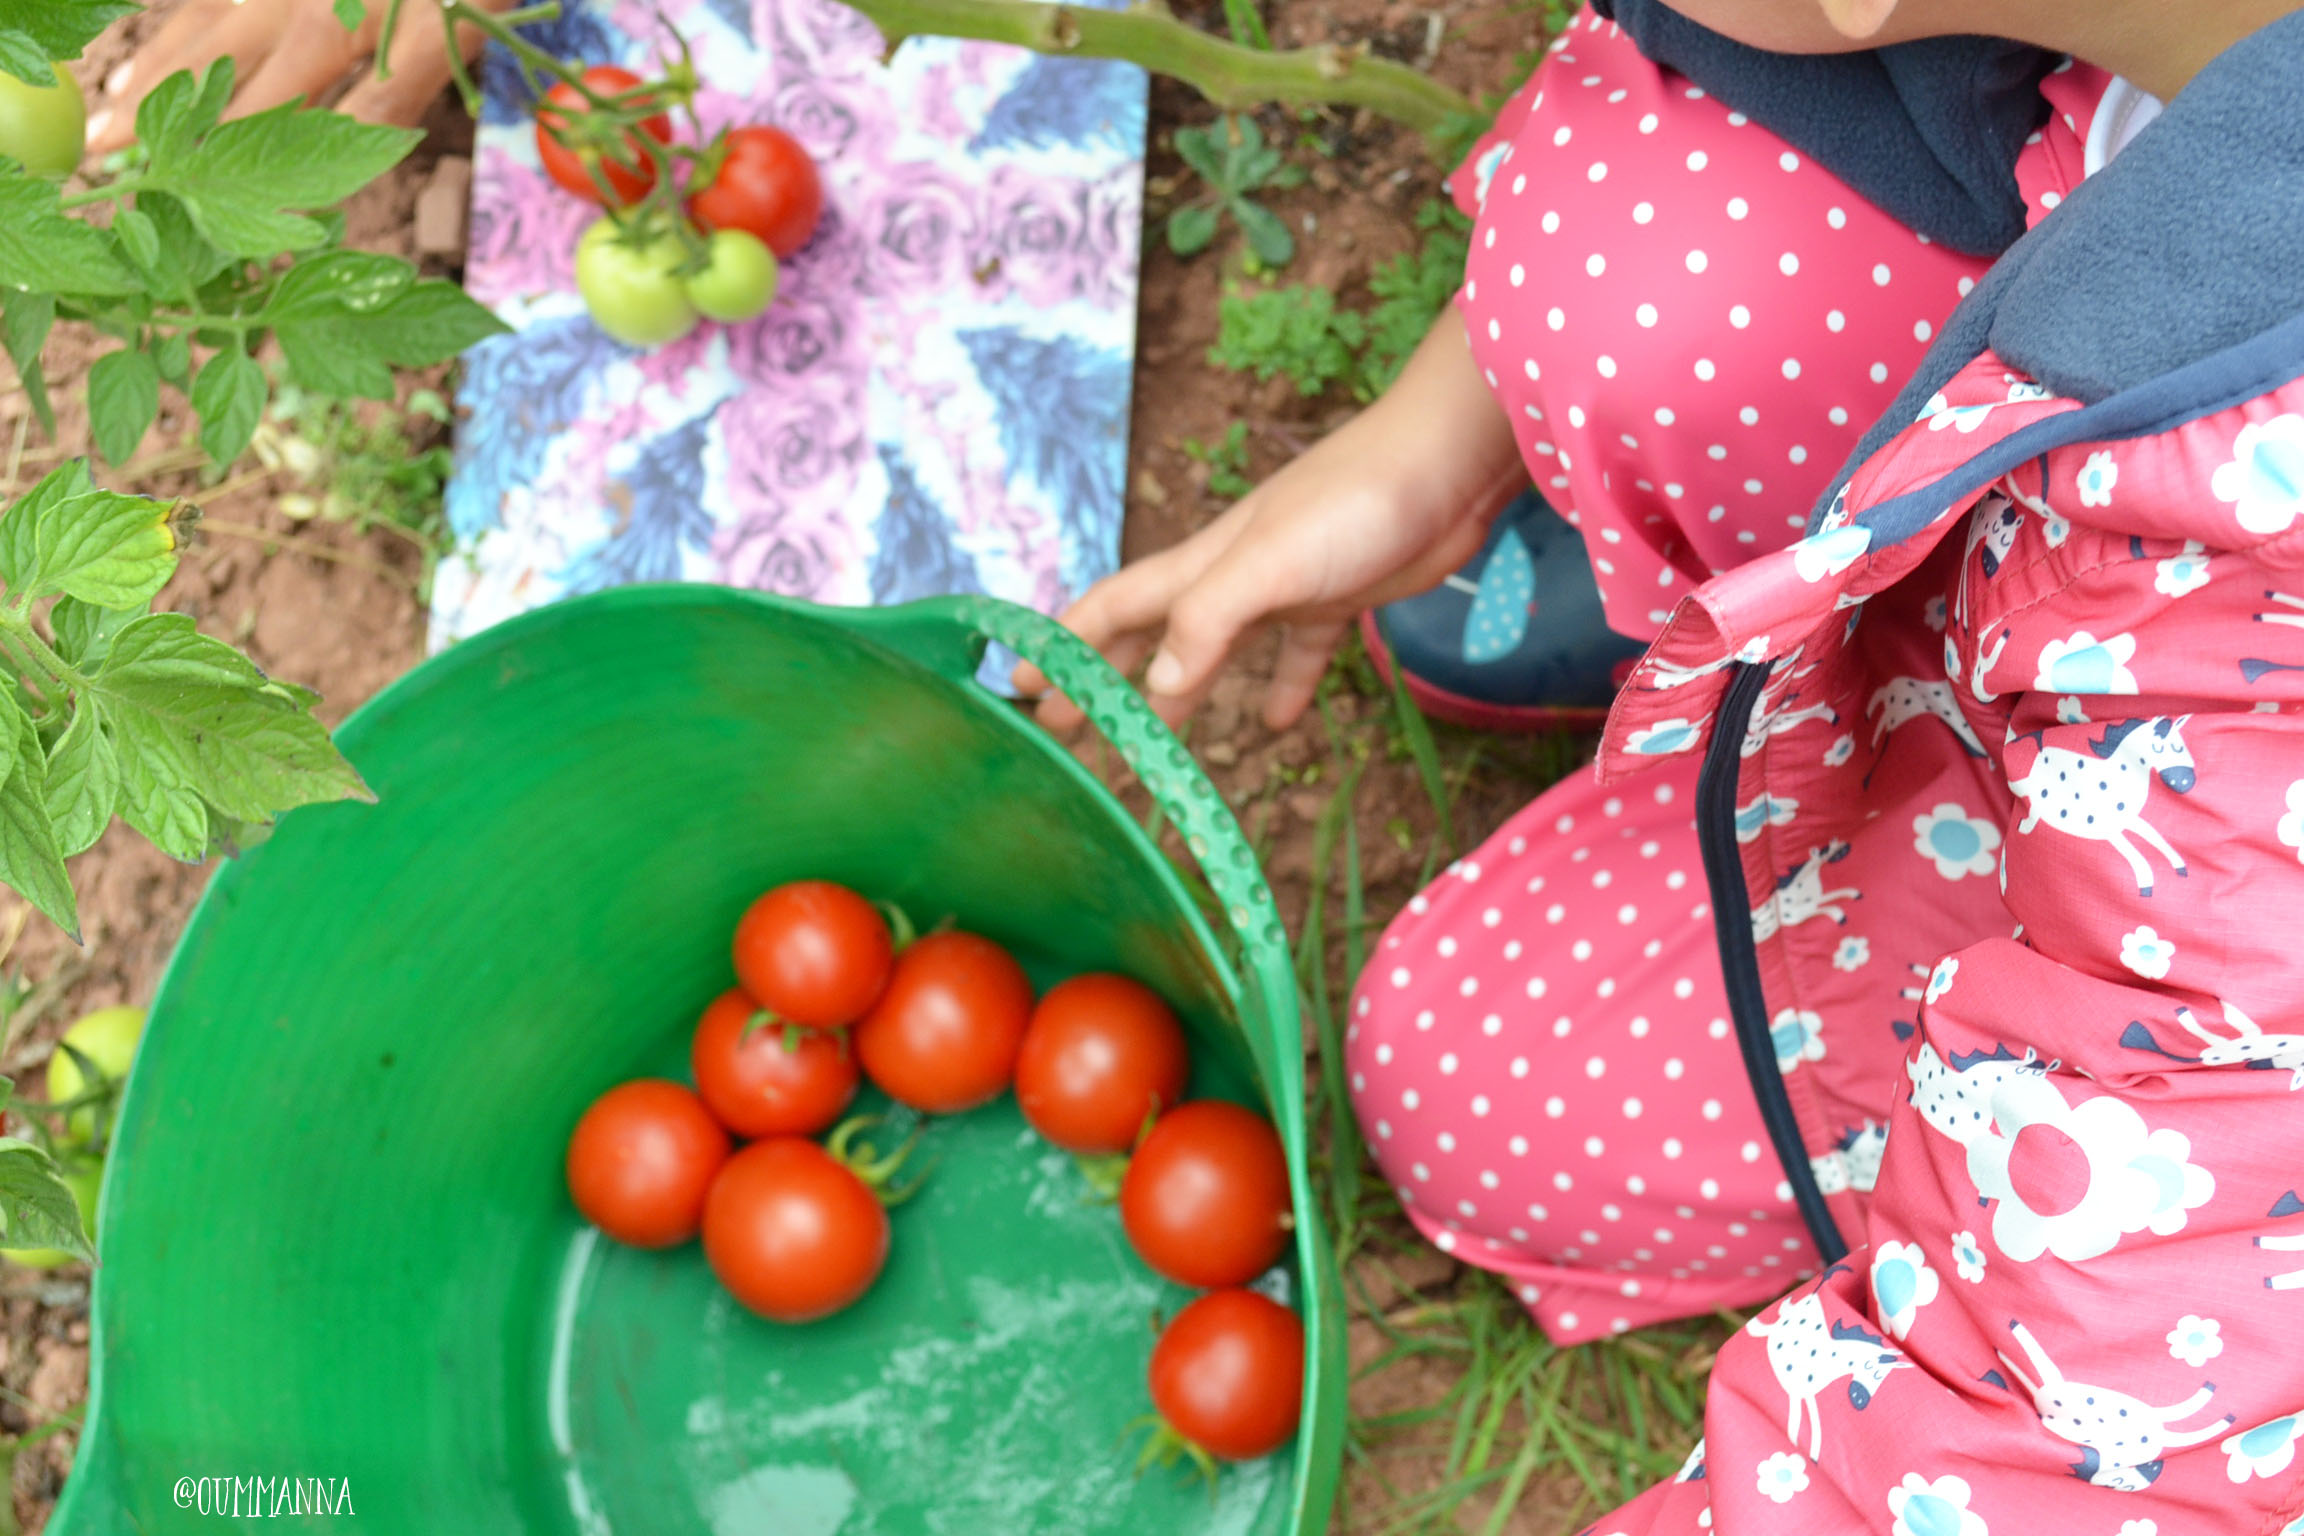 tomatoes-in-a-bucket